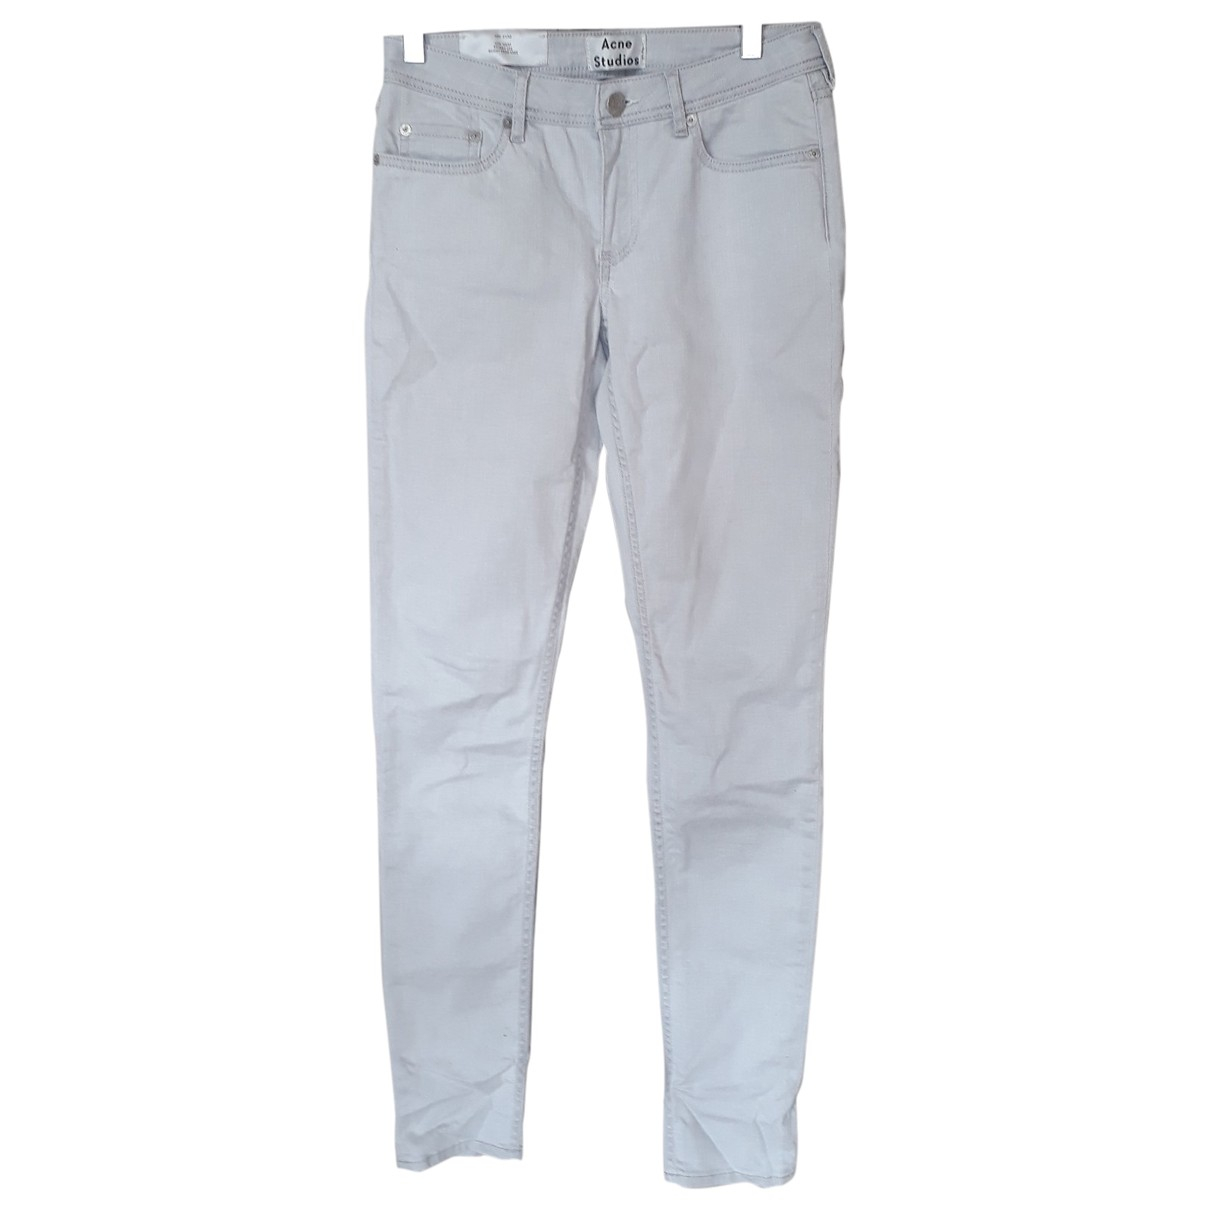 Acne Studios N Grey Cotton - elasthane Jeans for Women 27 US